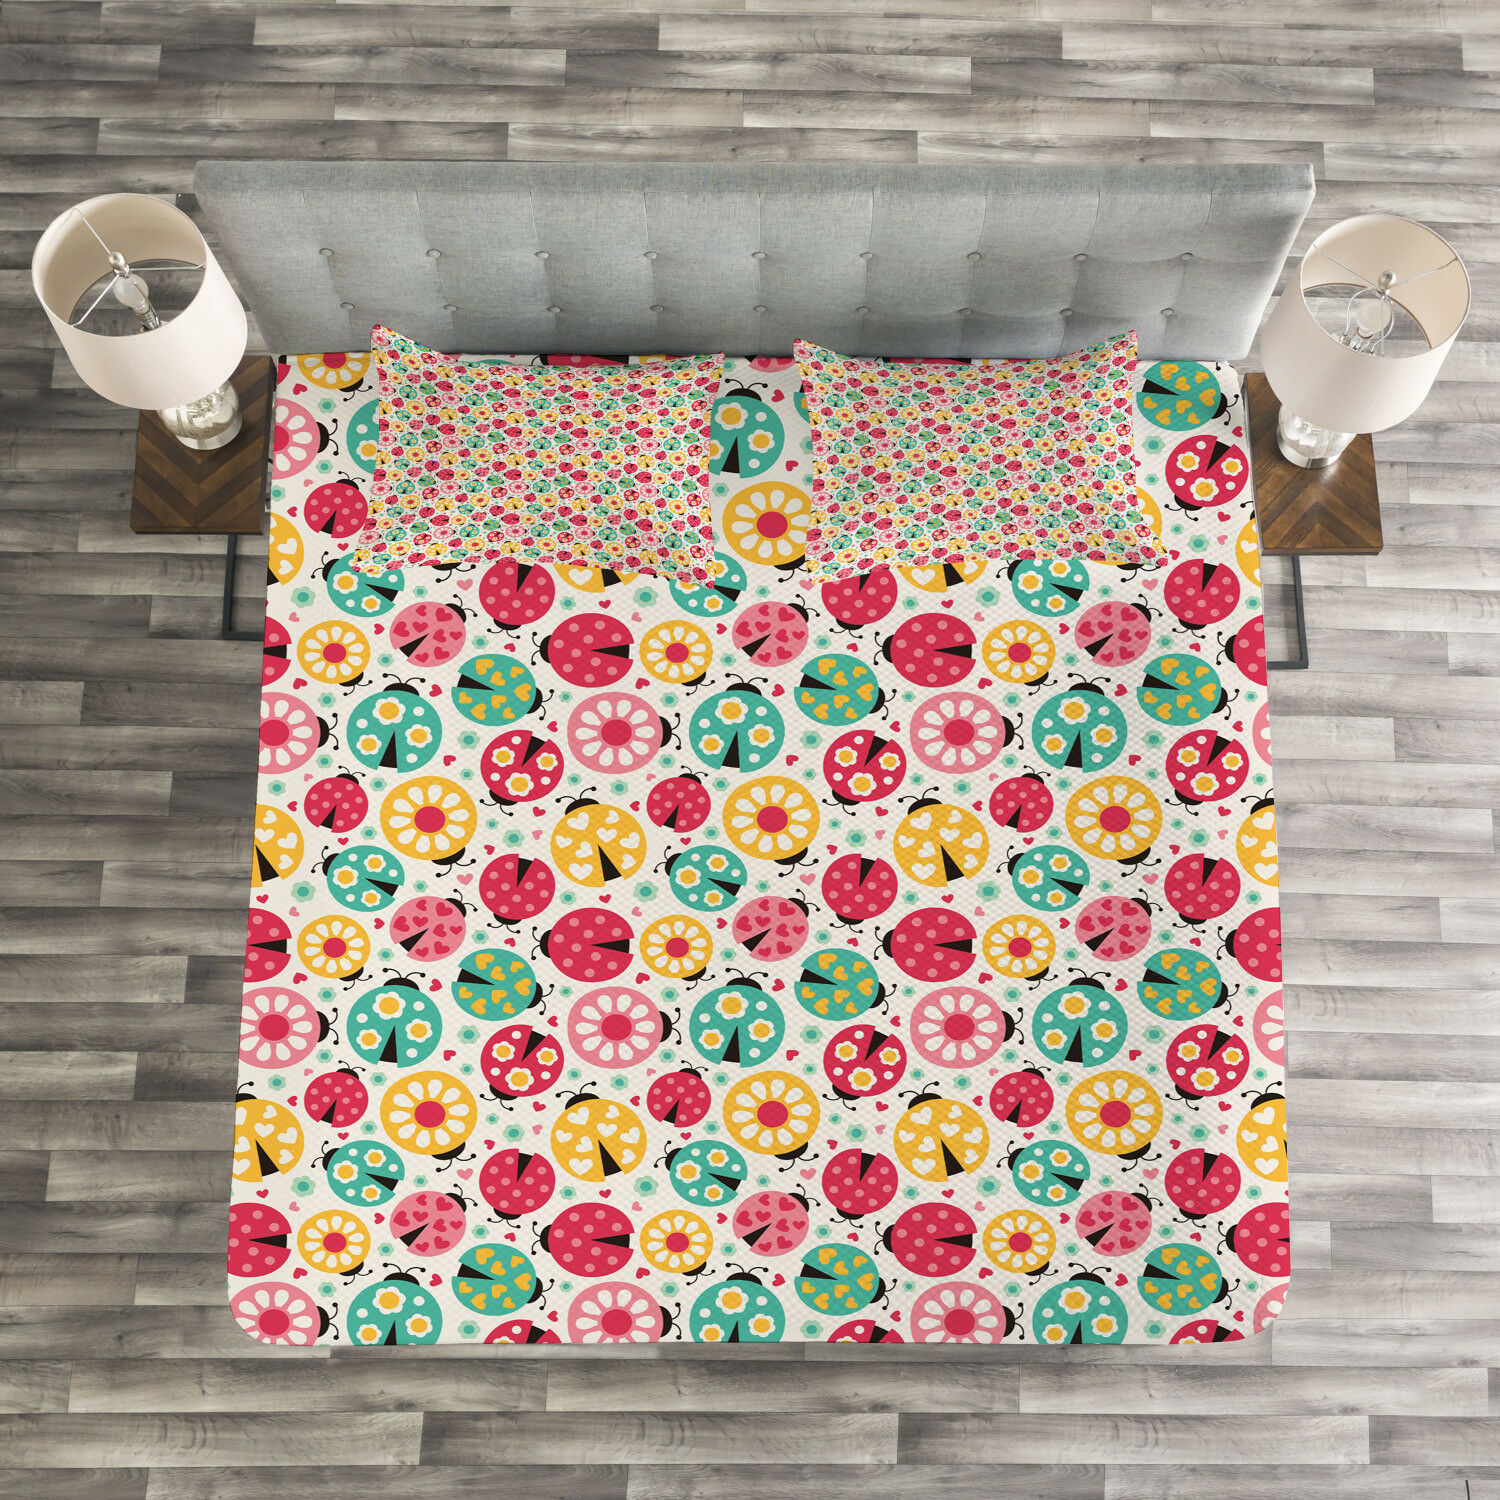 Ladybugs Quilted Bedspread & Pillow Shams Set, Abstract Beetle Design Print